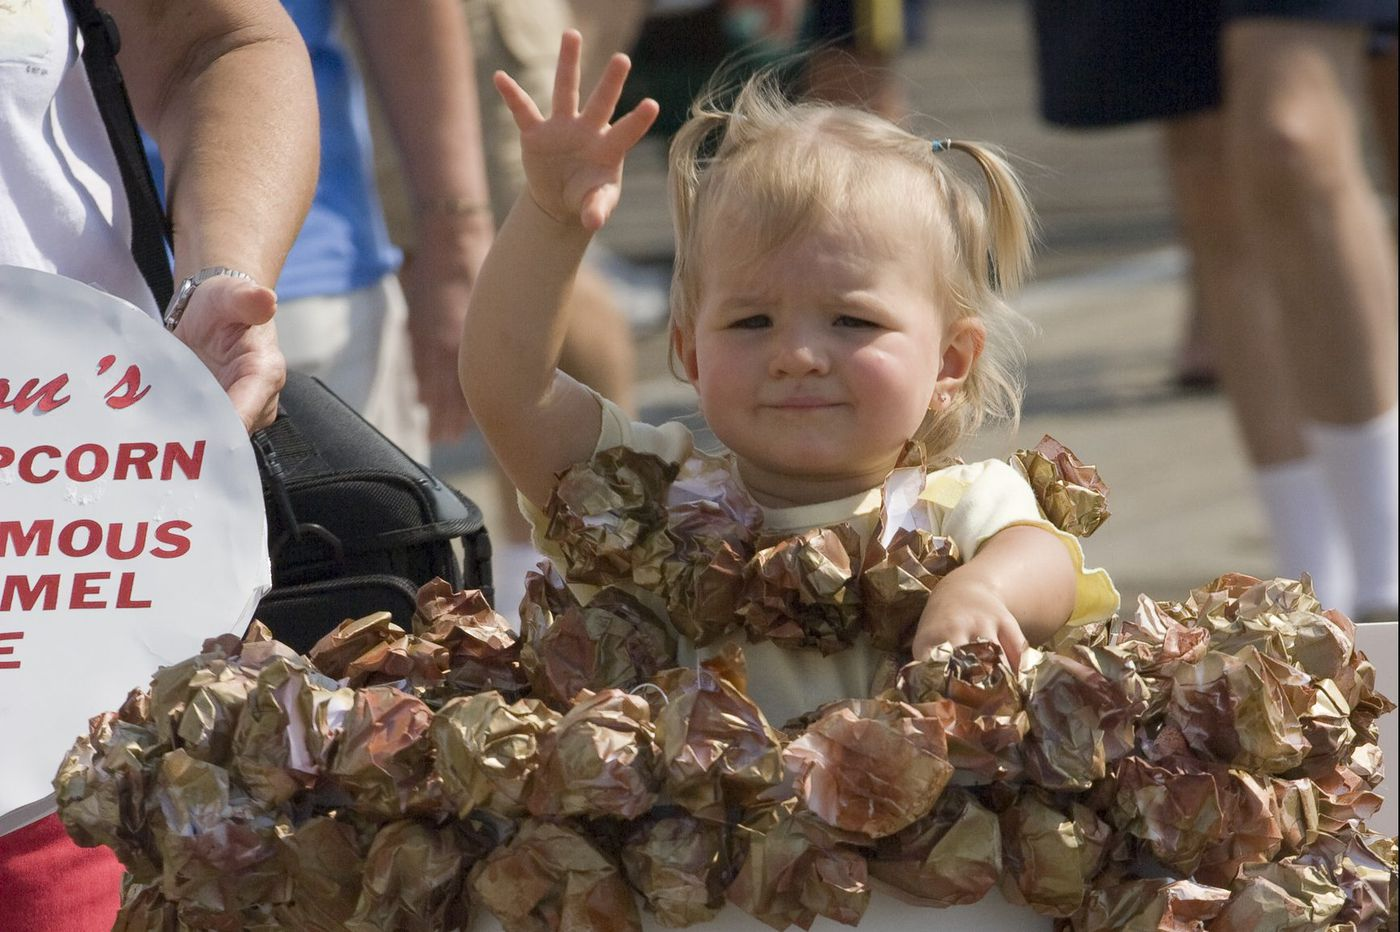 Baby parades, Yanni, crab festivals, and more things to do down the Shore